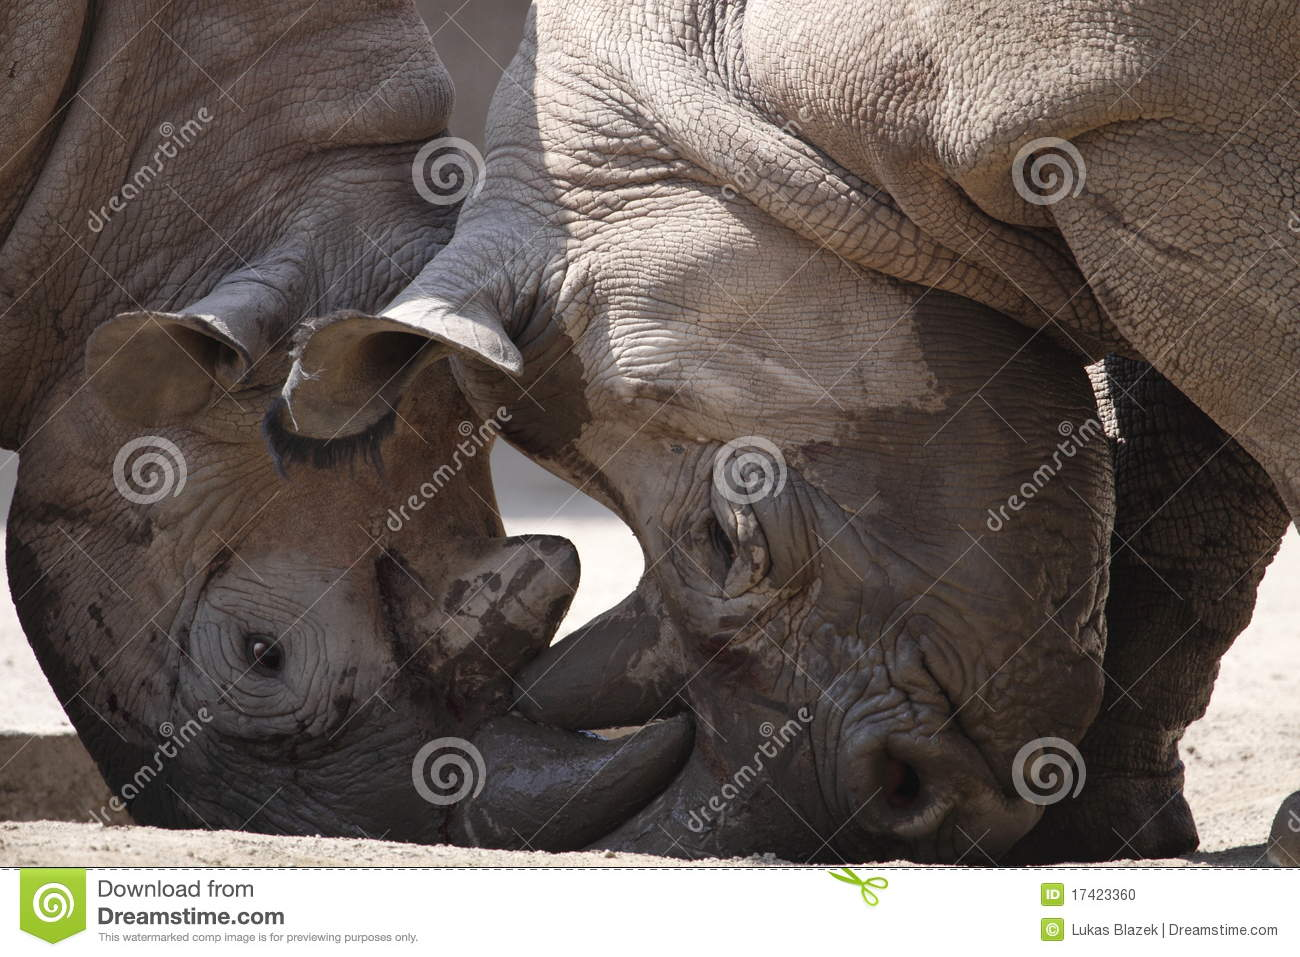 Rhinos fight